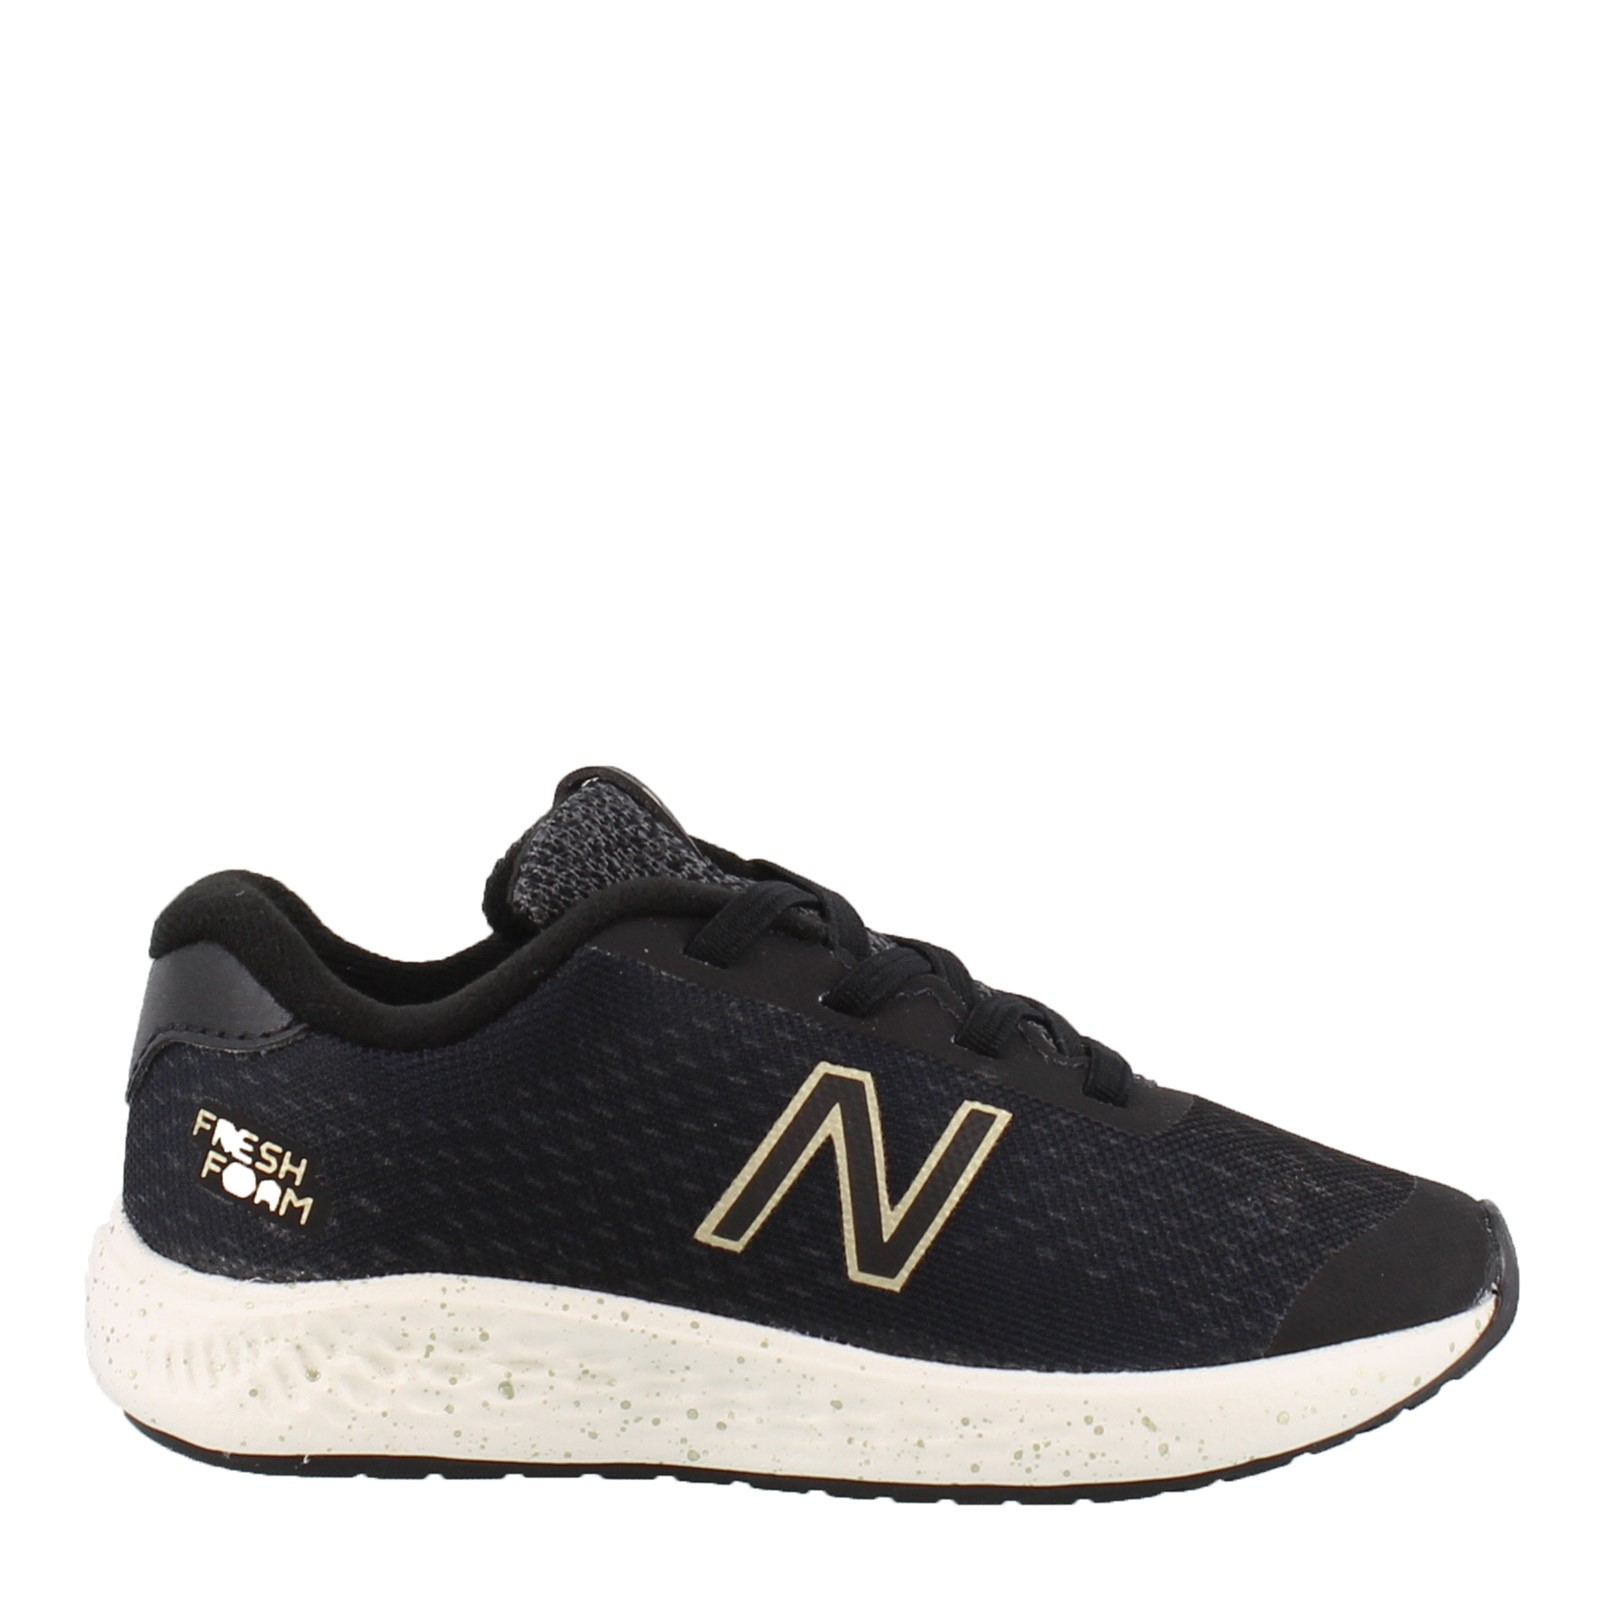 Boy's New Balance, Arishi Next Sneaker - Toddler